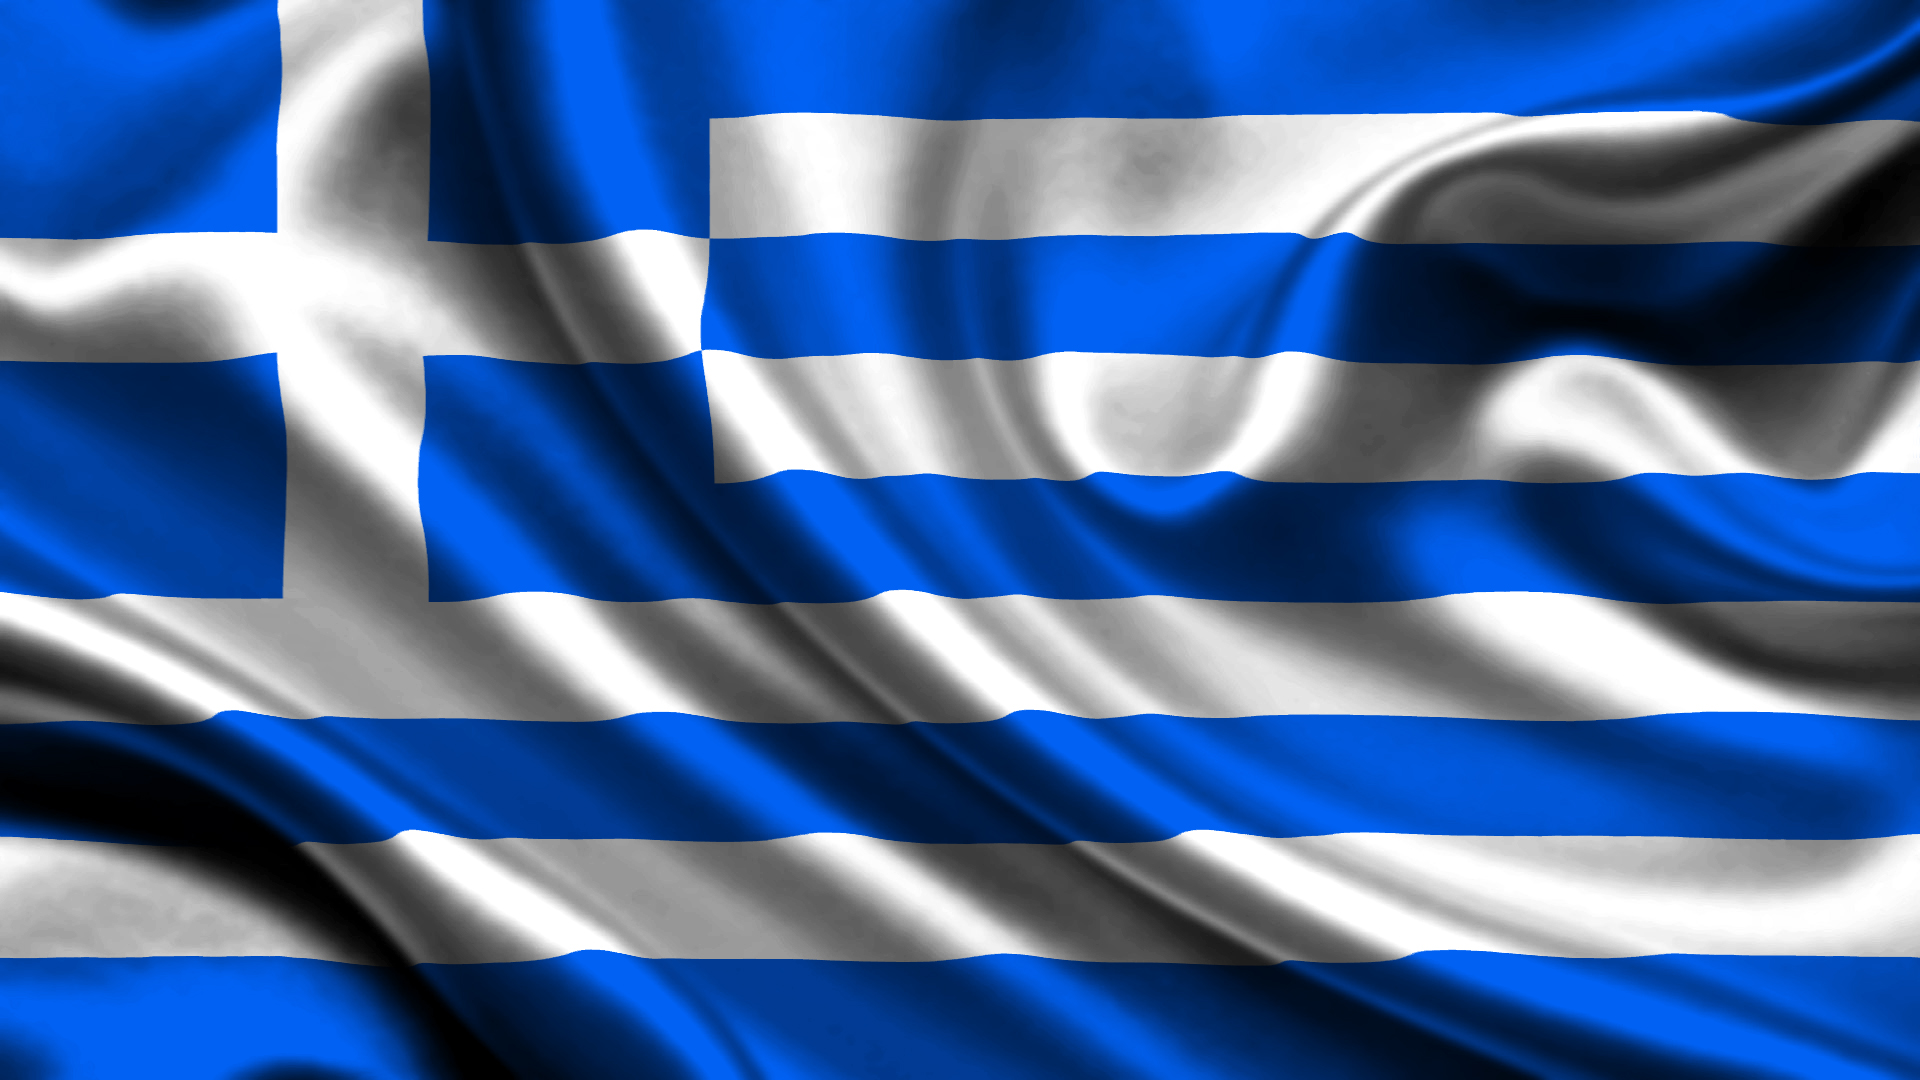 Greece Flag HD Wallpaper 1920x1080